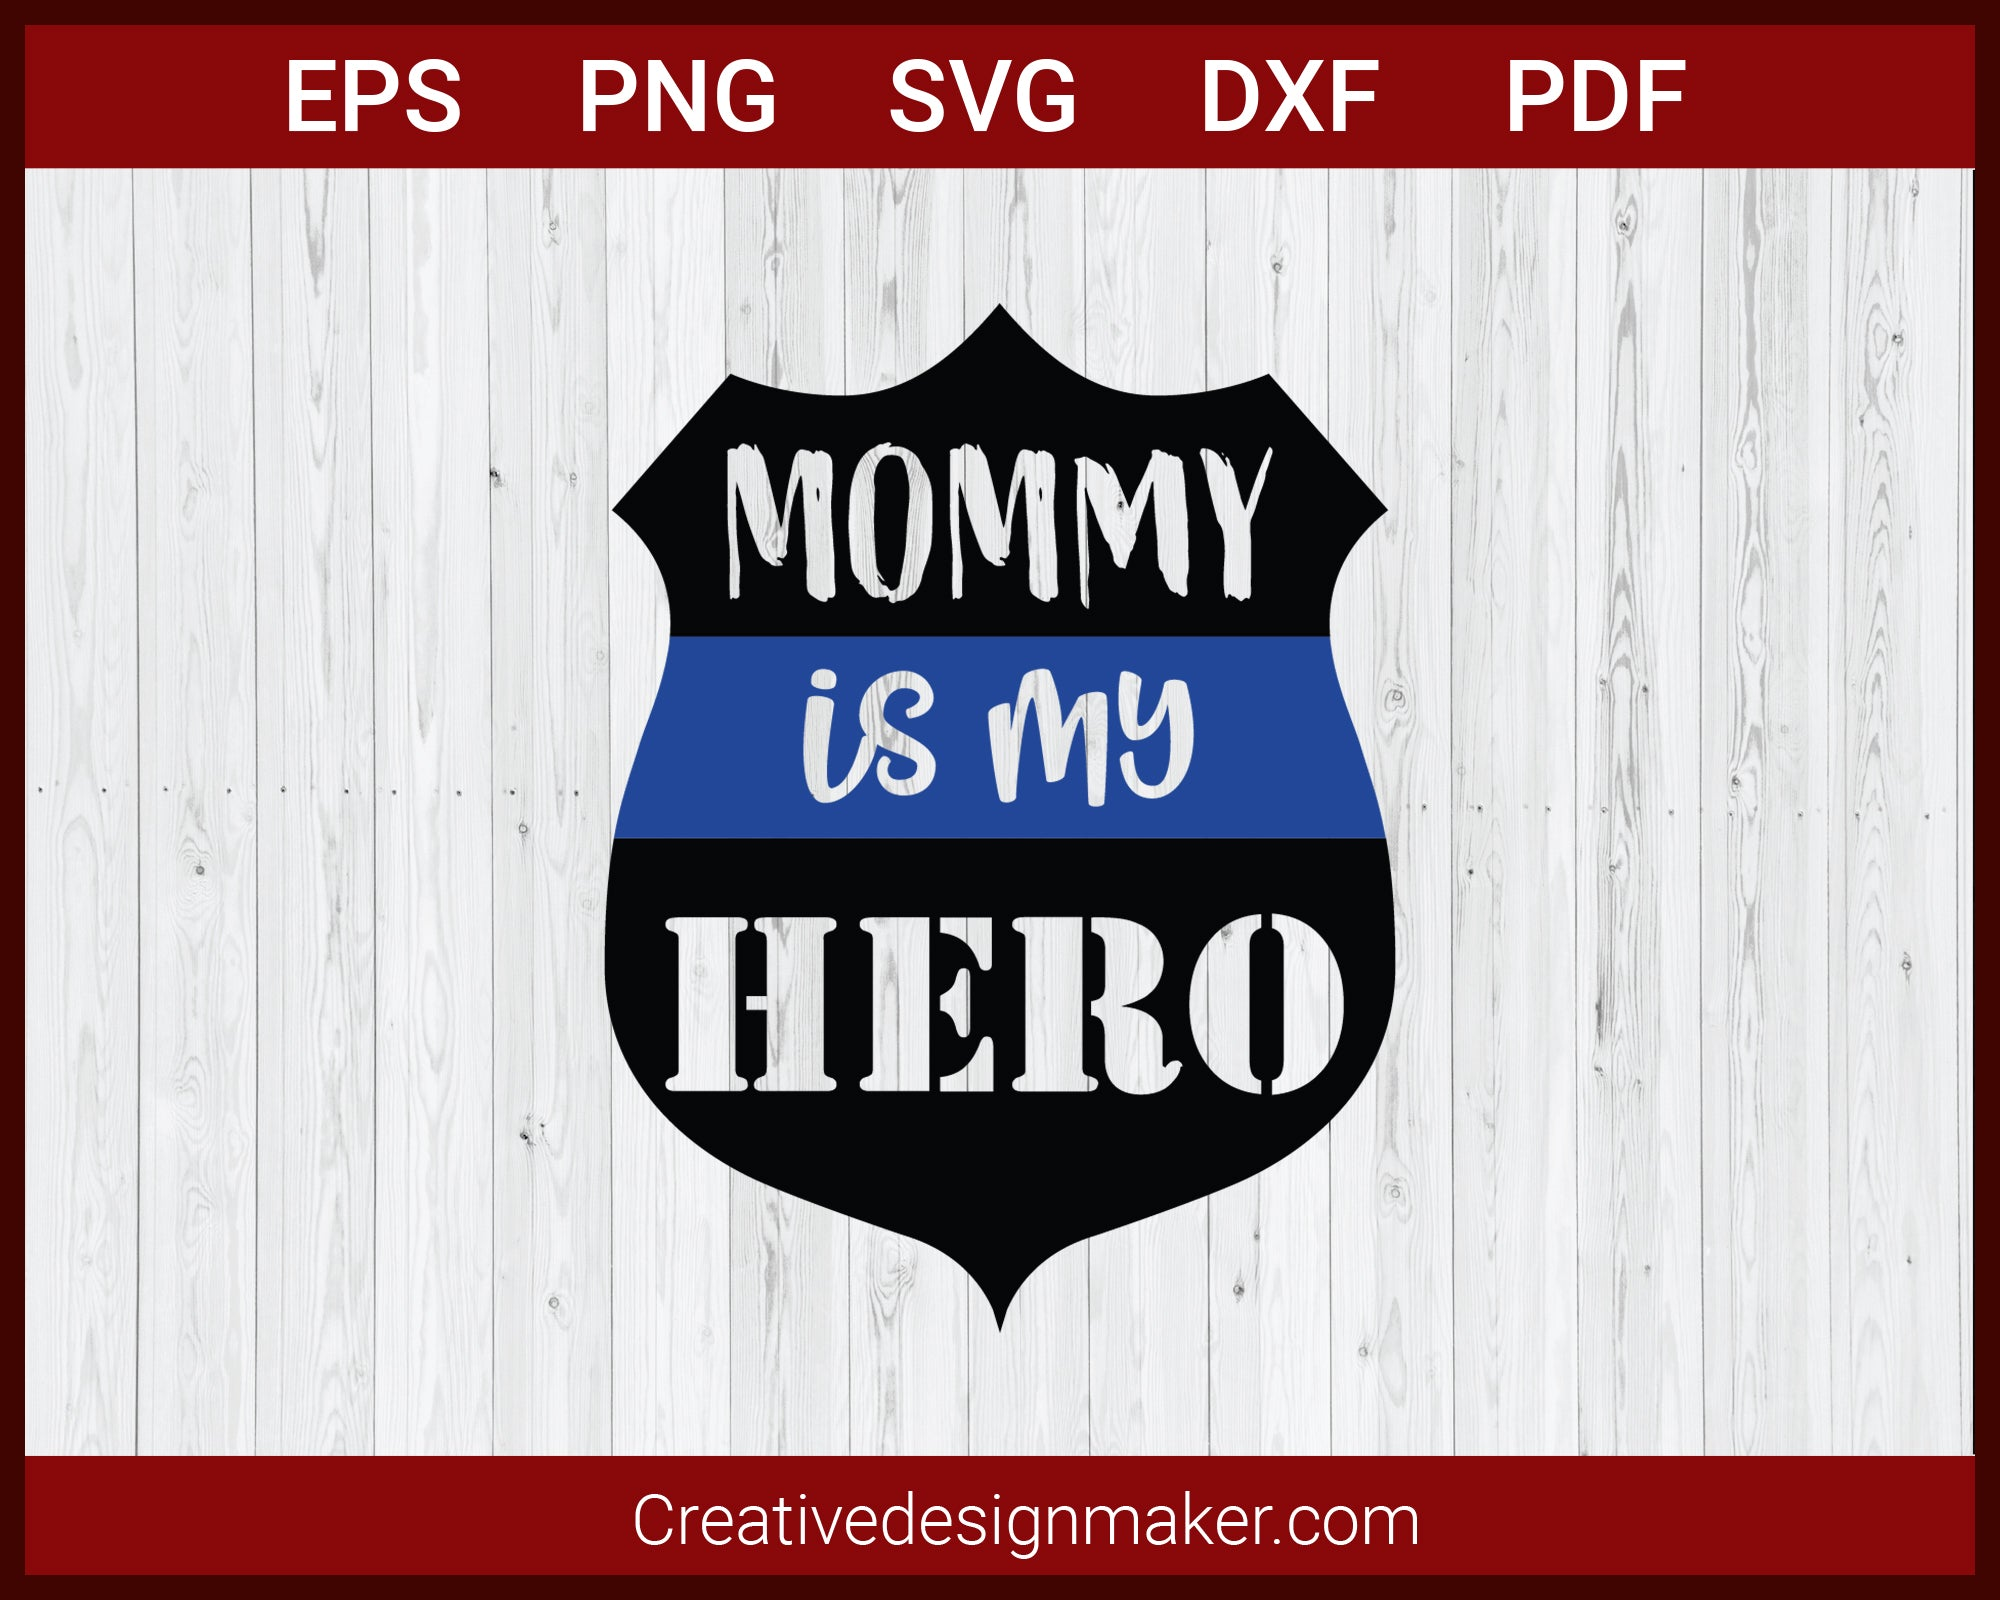 Mommy Is My Hero Police Badge Mother's Day SVG Cricut Silhouette DXF PNG EPS Cut File